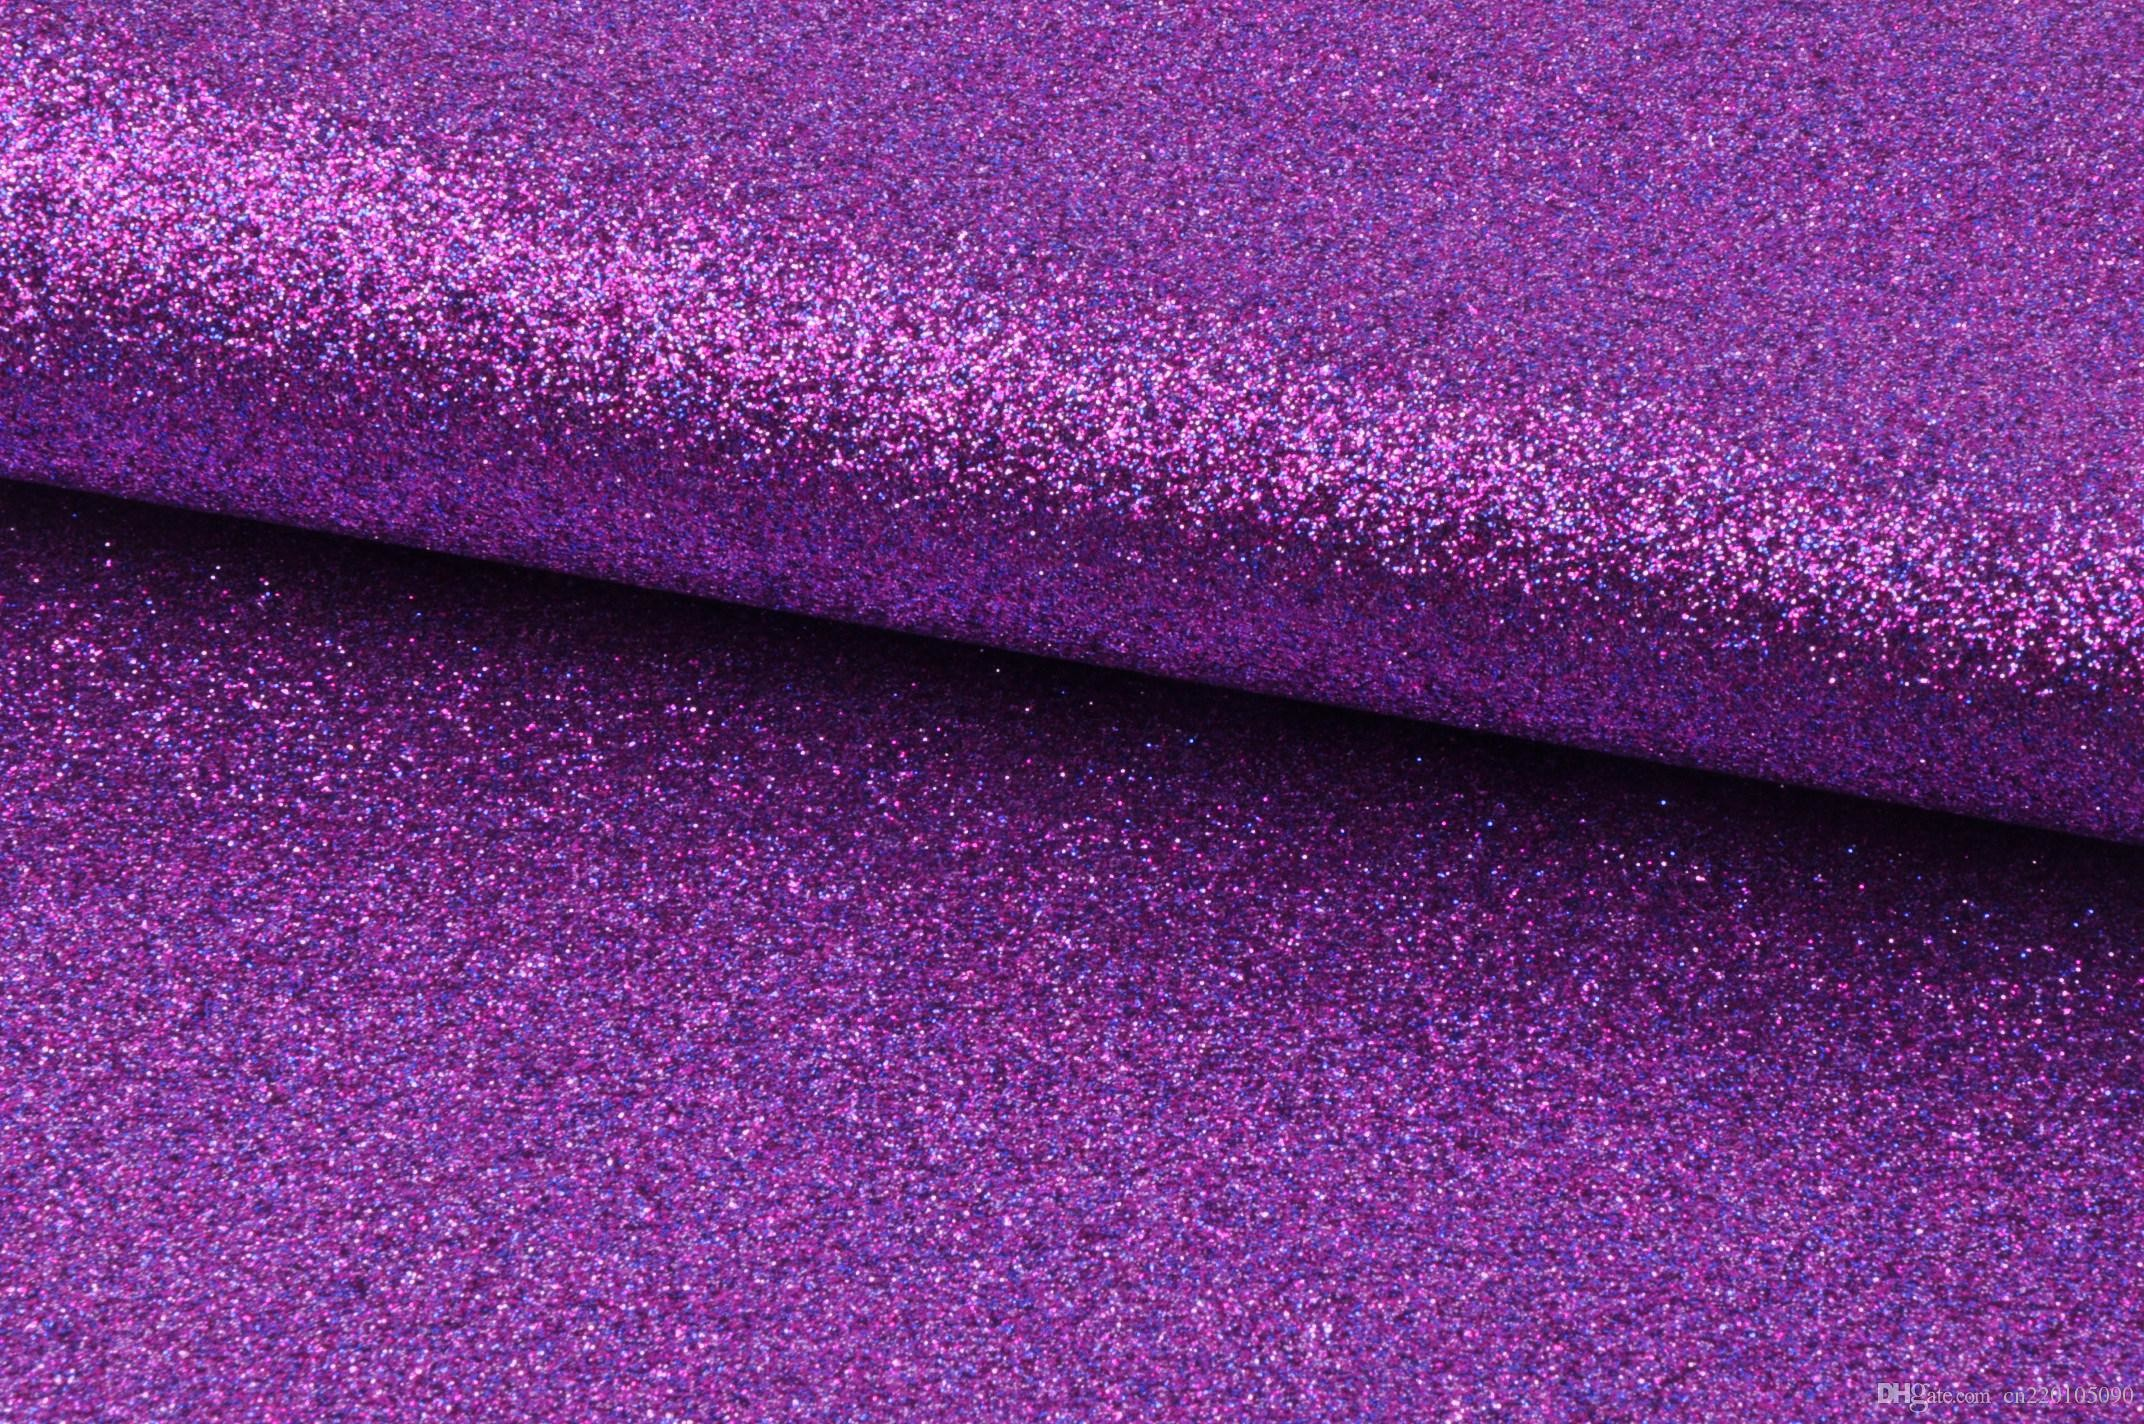 DErun Colorful Fine Glitter Pu Fabric Wallpaper Factory Wholesales 50m Roll  Generation Available Glitter Wall Covering Glitter Wallpaper Glitter  Leather …